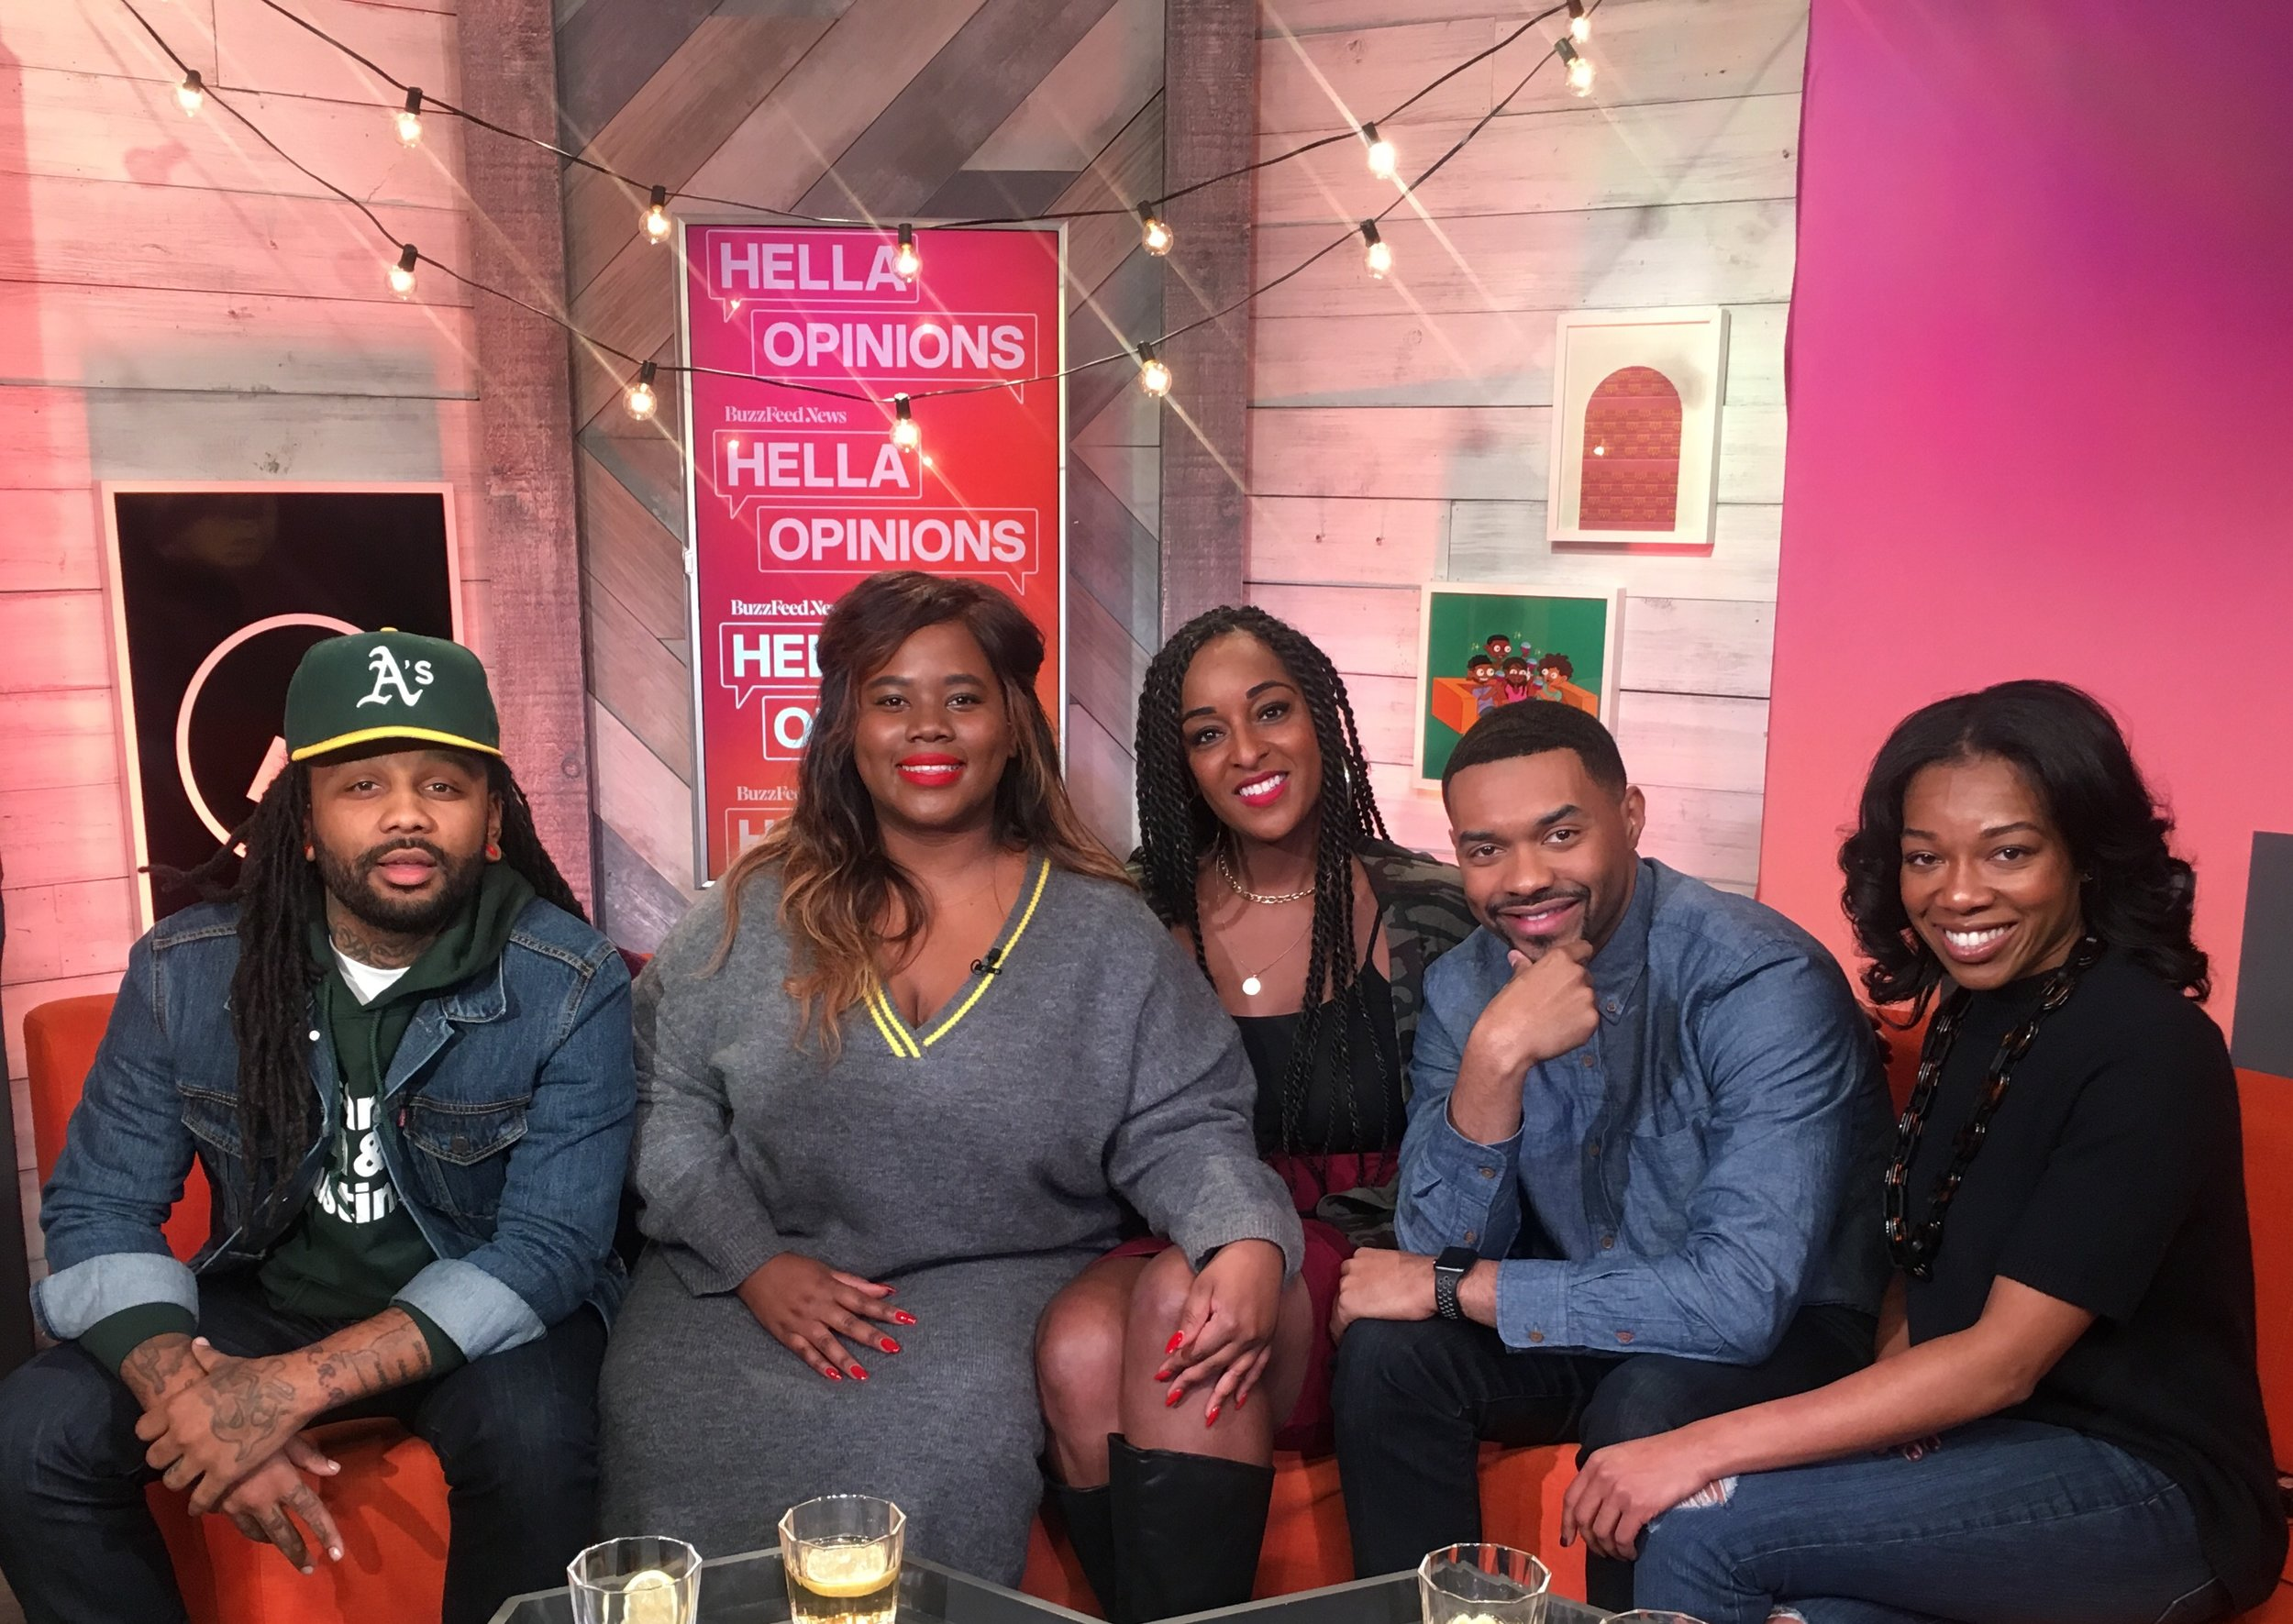 Buzzfeed's Hella Opinions - Dr. Hodge joined a panel of guests for a meaningful conversation about mental health, the black community, and relevant celebrity tweets!